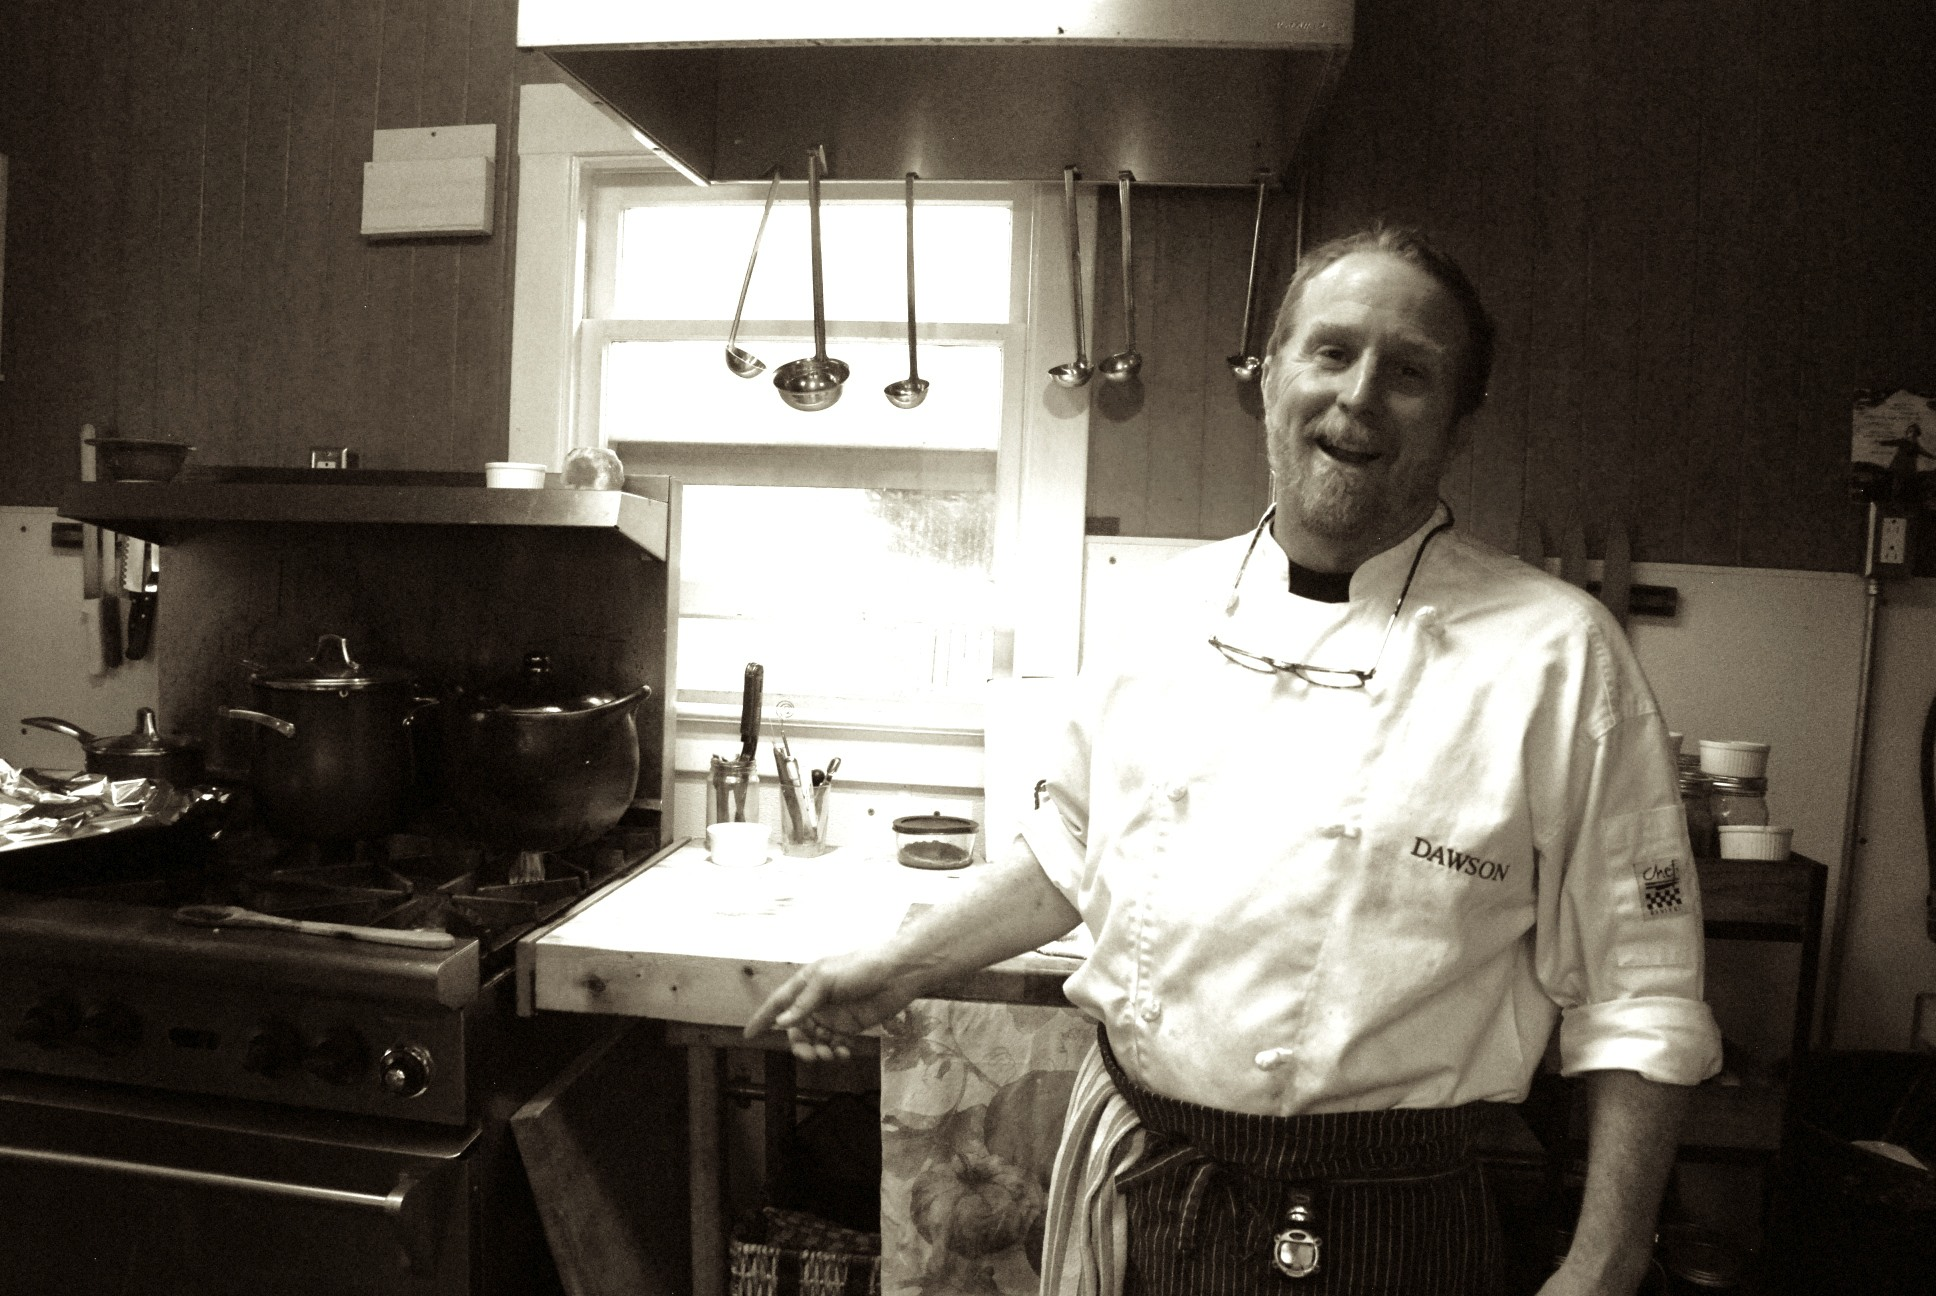 Chef Joe prepares sumptuous dinners for reserved parties and weddings.